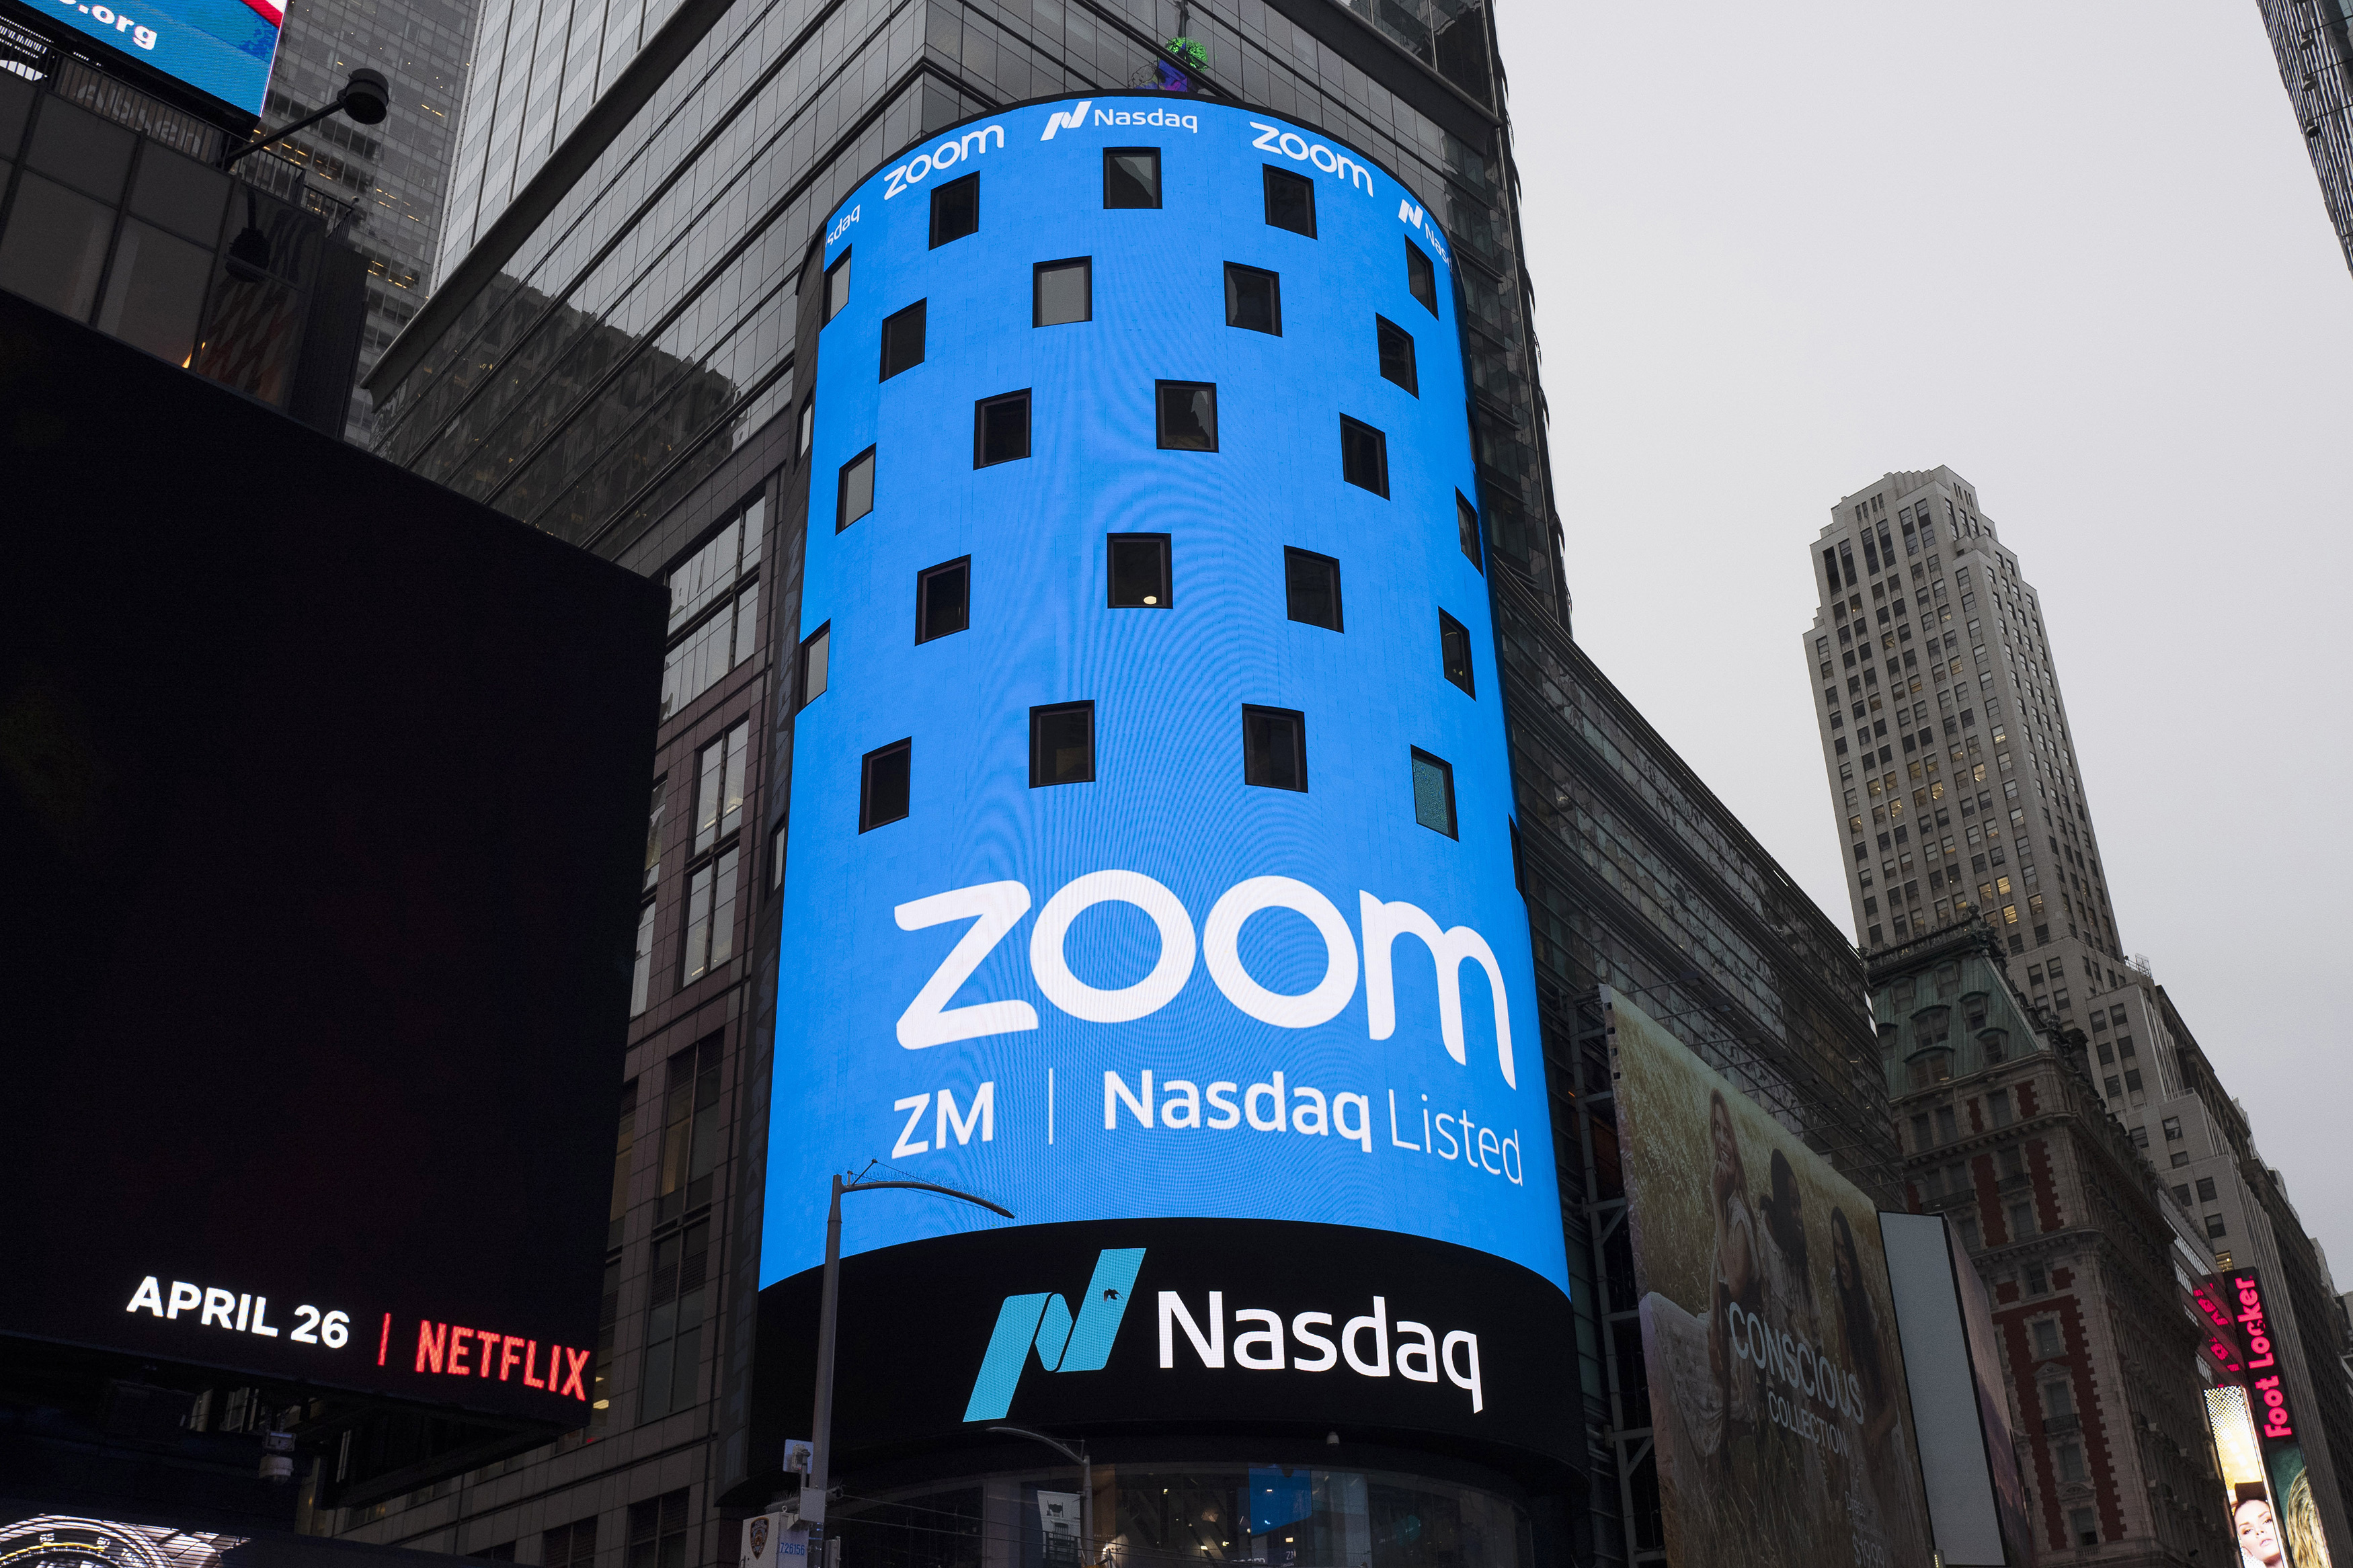 FILE - This April 18, 2019, file photo shows a sign for Zoom Video Communications ahead of the company's Nasdaq IPO in New York. Now that Zoom has emerged as one of the most popular ways to get together virtually while the coronavirus pandemic keeps people apart, the company is trying to build a more secure fortress around the billions of conversations occurring on its videoconferencing service daily. (AP Photo/Mark Lennihan, File) ORG XMIT: NYSB221